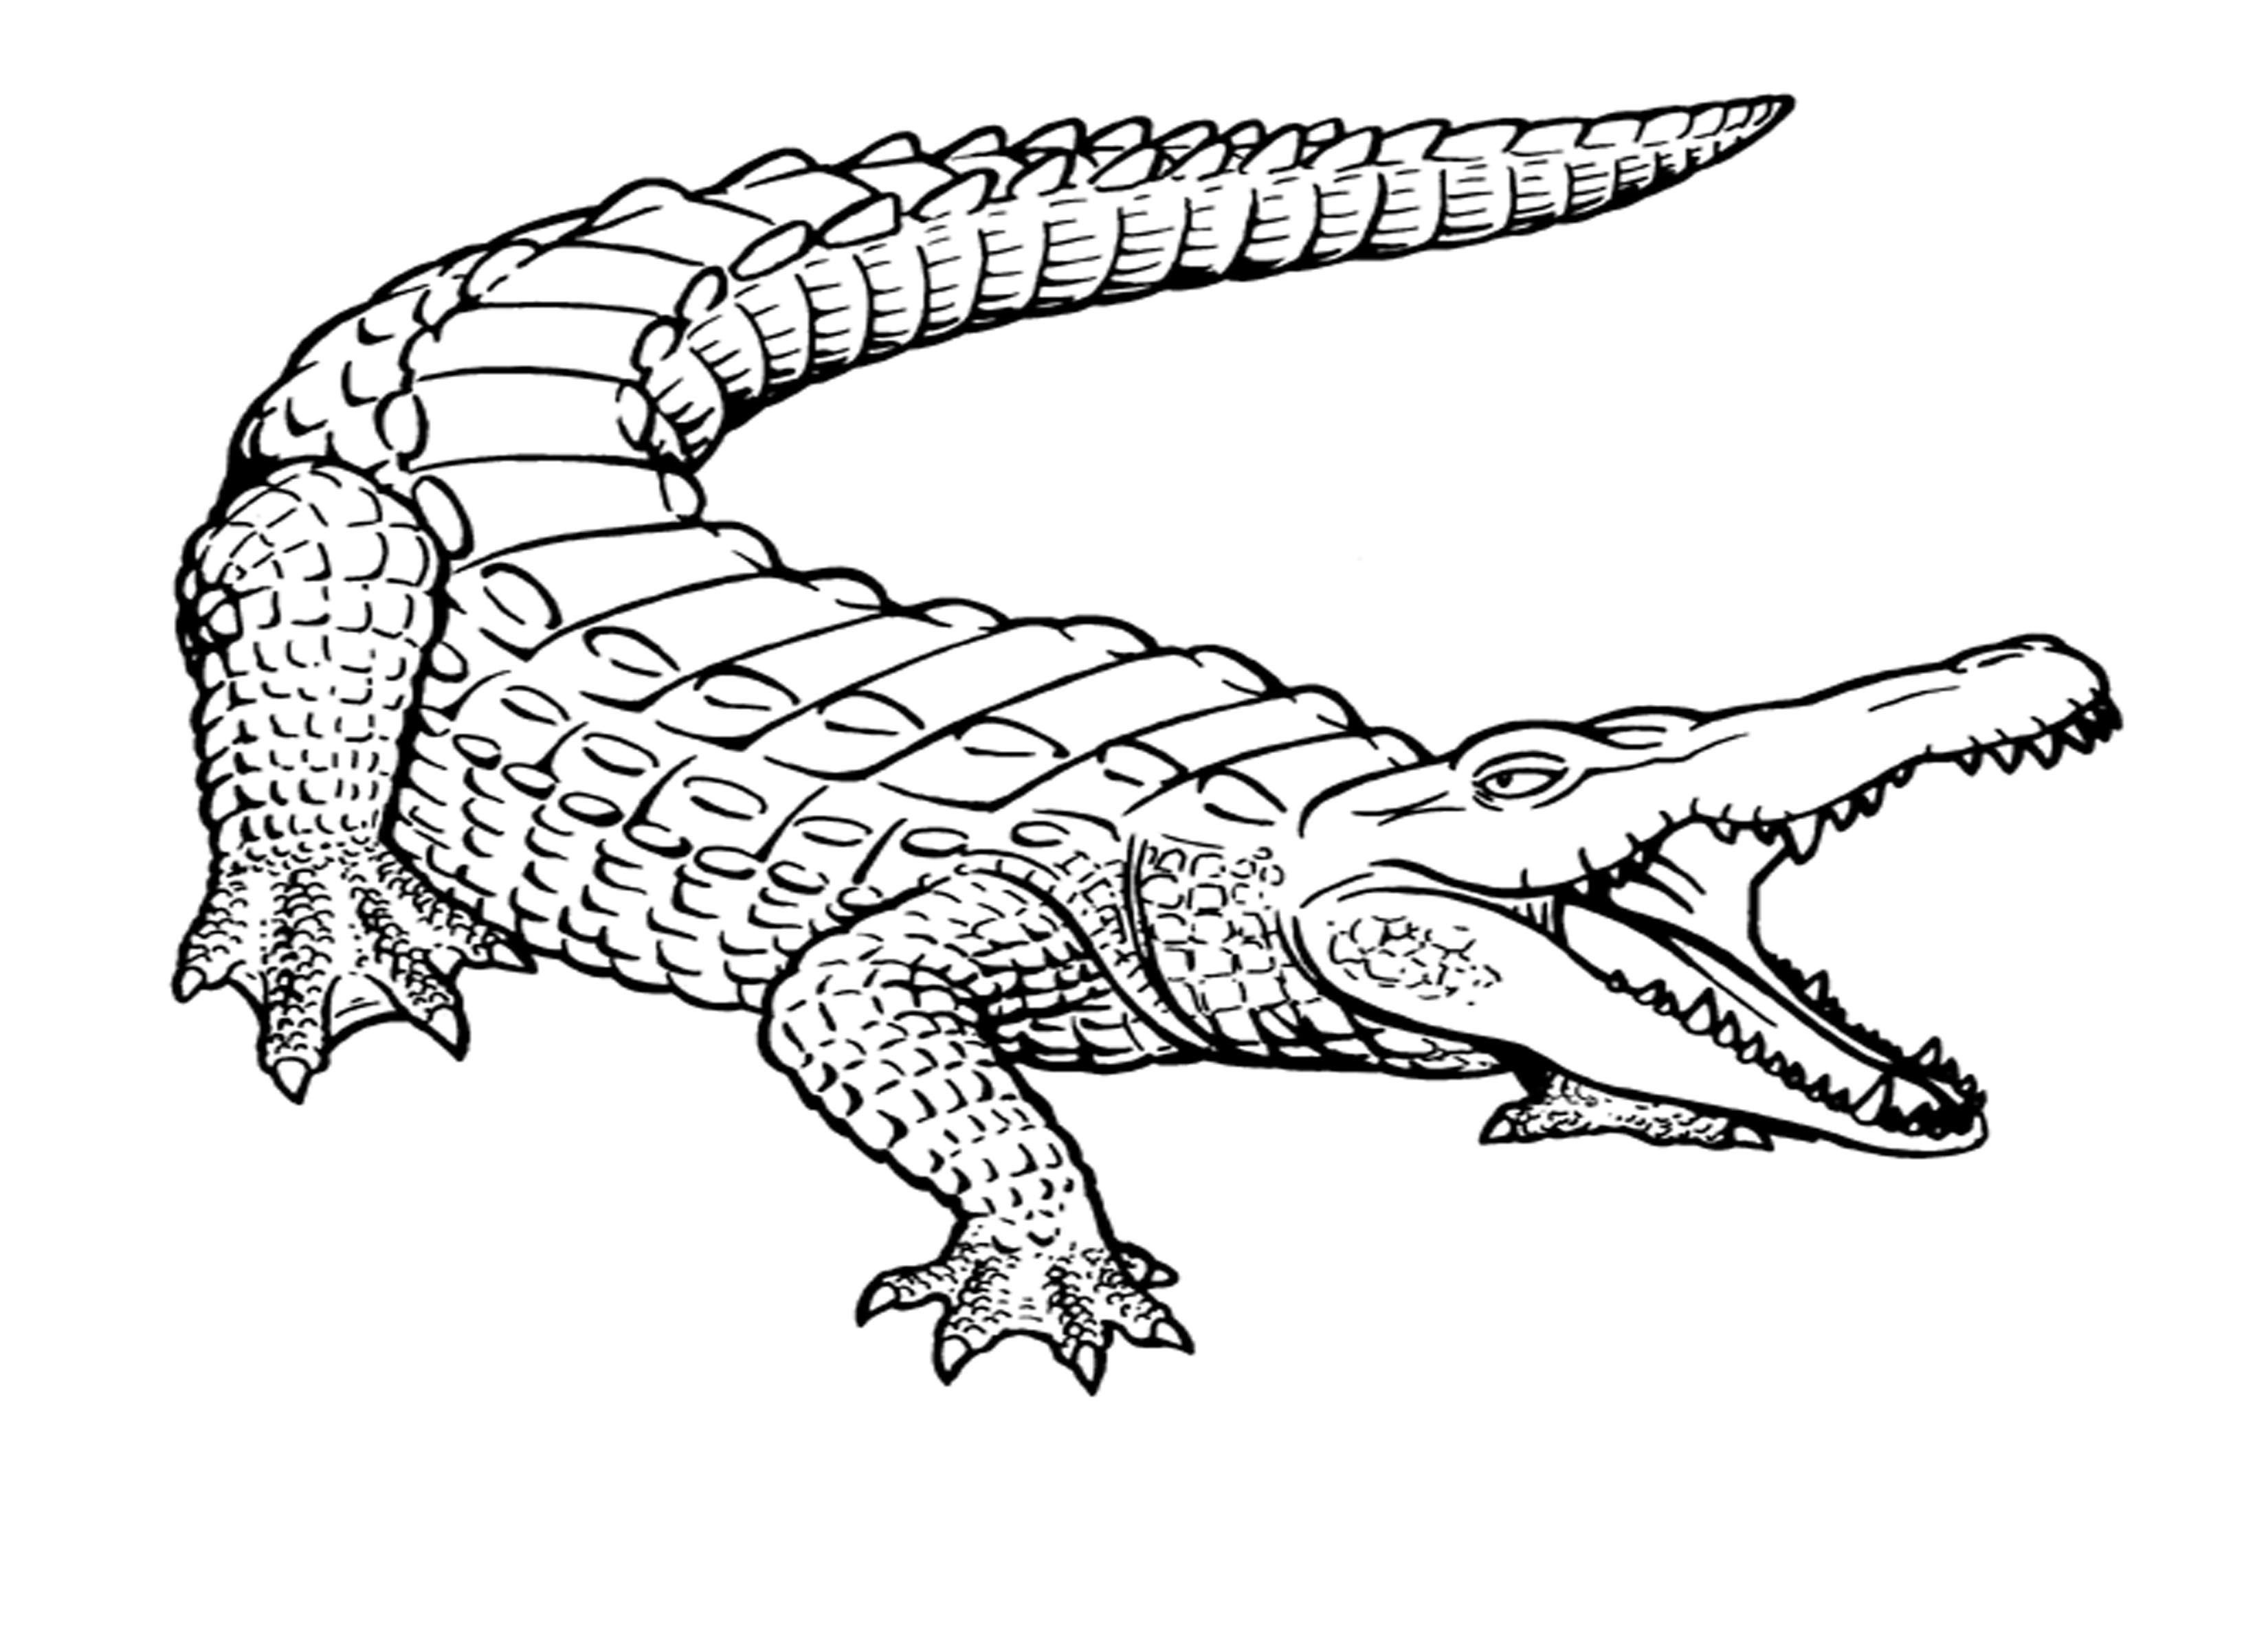 Free Printable Crocodile Coloring Pages For Kids | Ms | Coloring - Free Printable Pictures Of Crocodiles